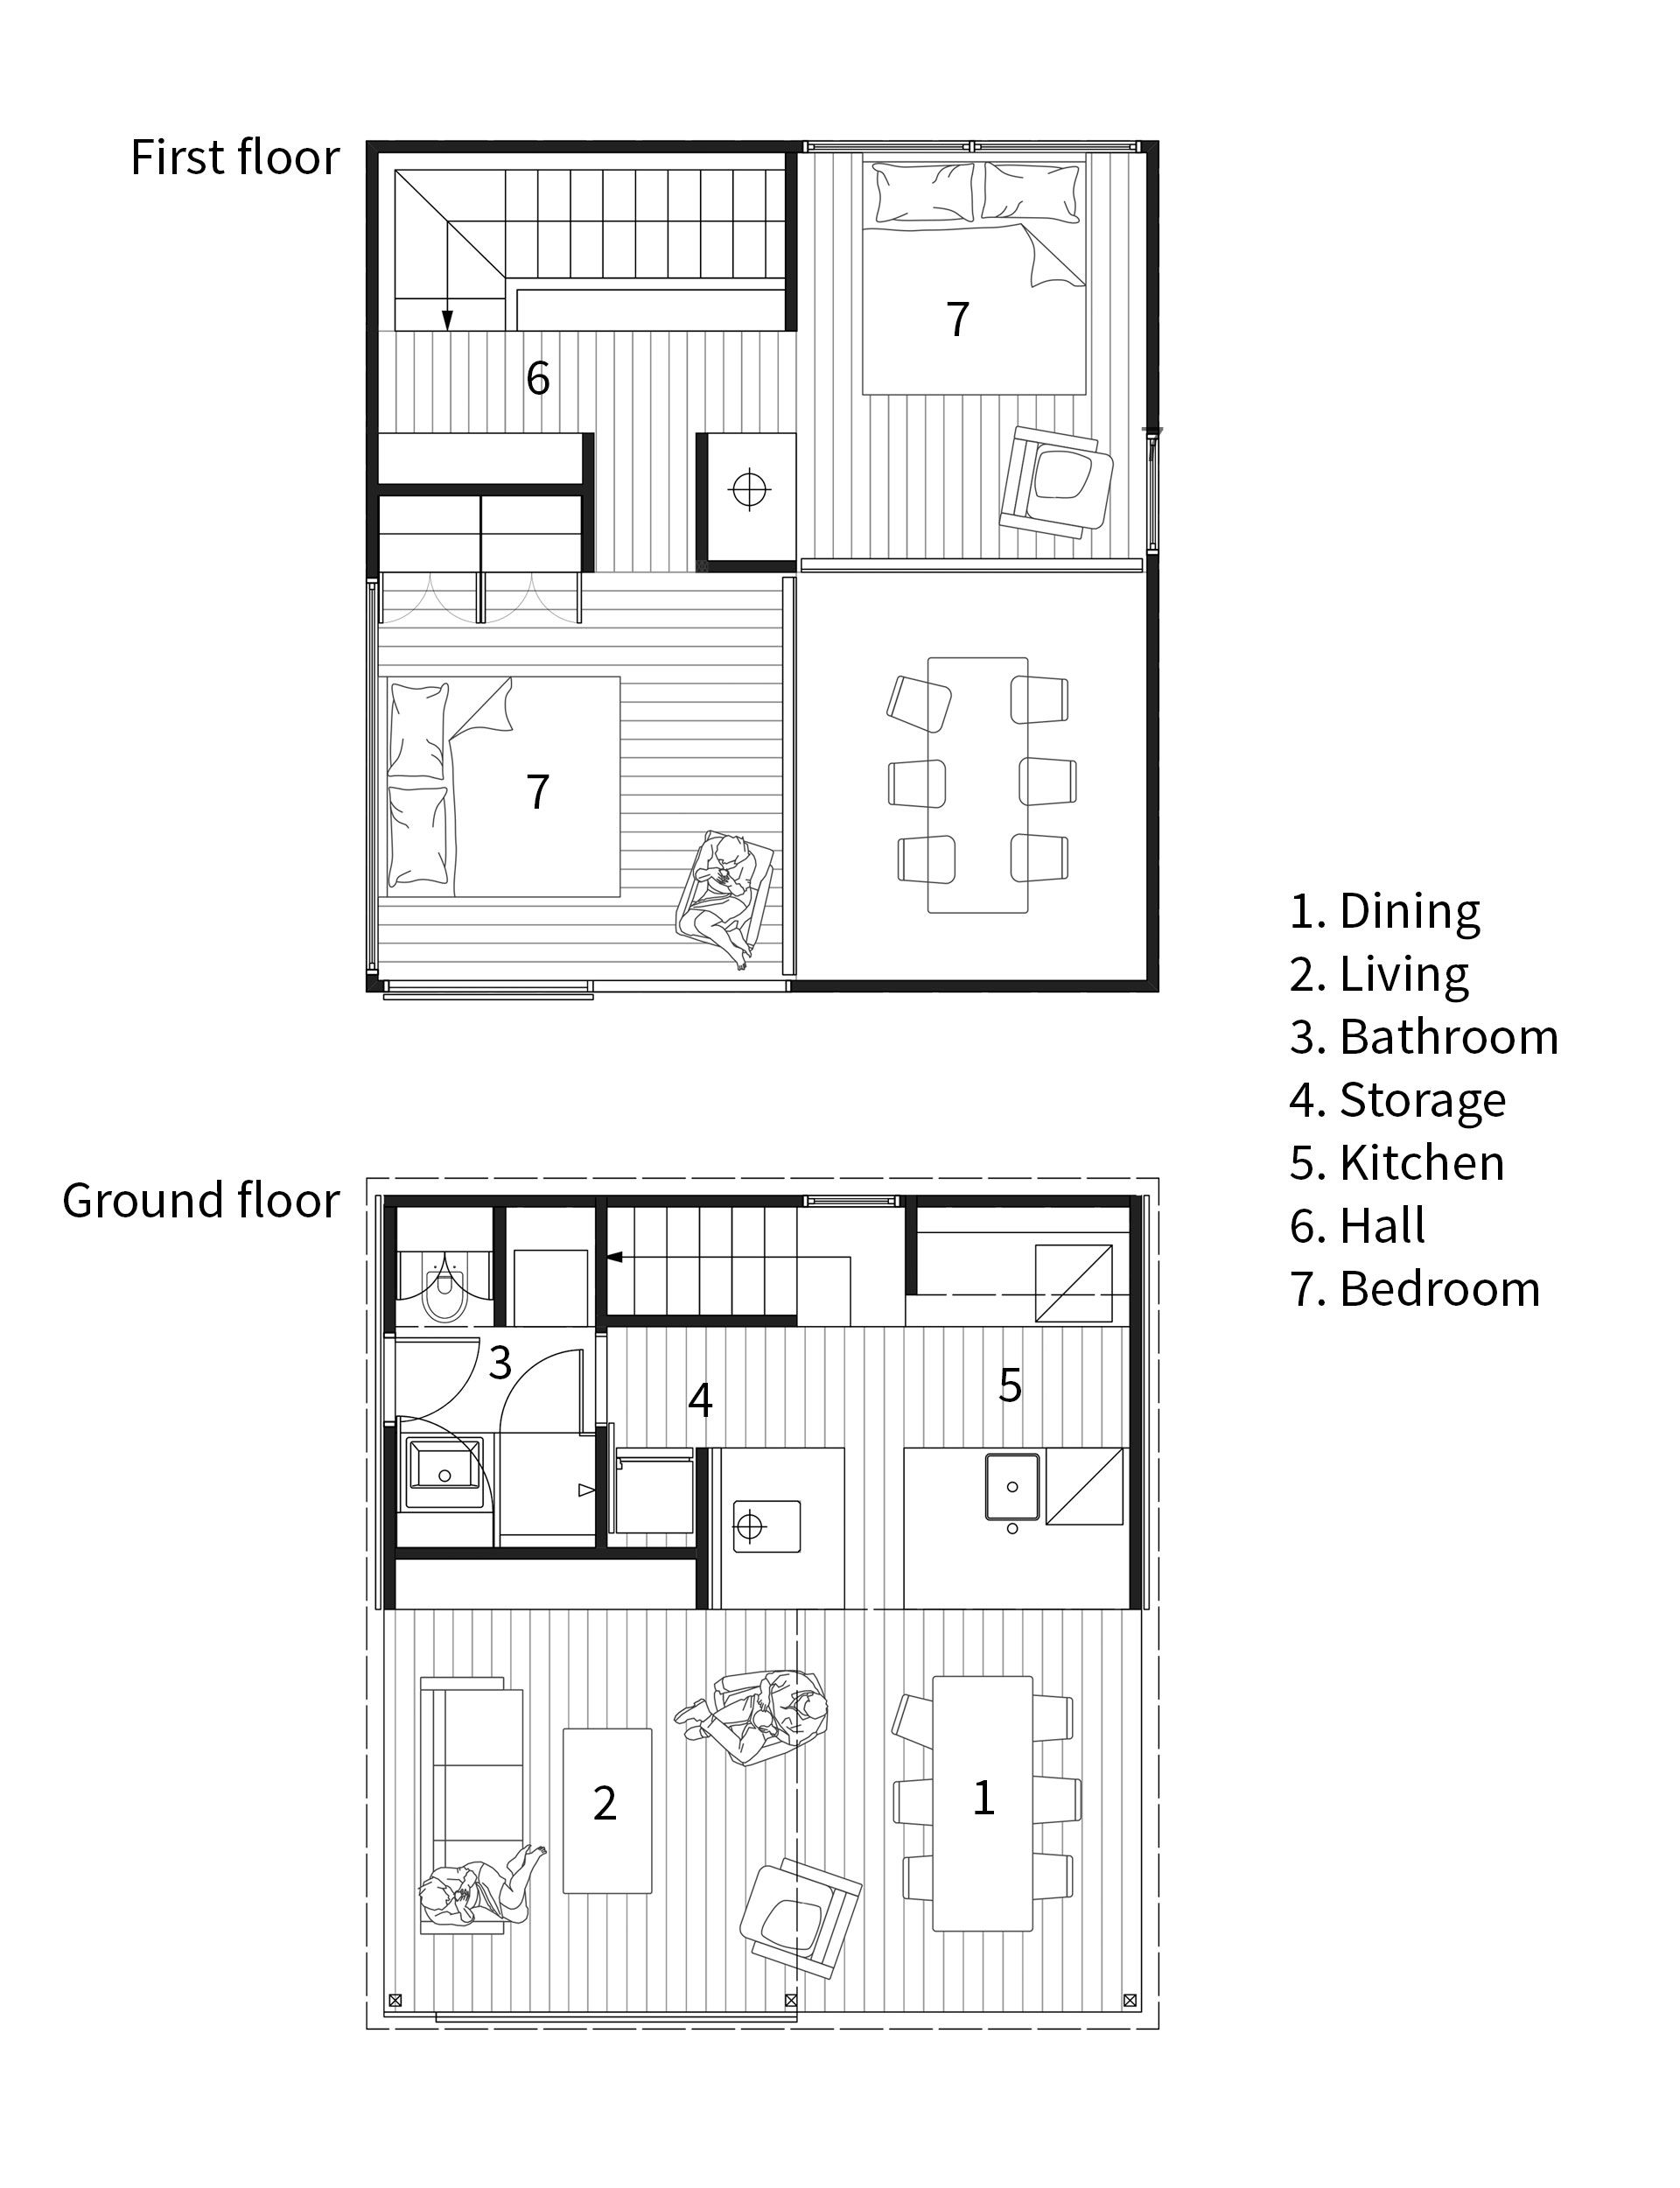 This Tiny 36 Square Metre Home Has The Most Inspiring Design Little House Plans Mini House Plans Small House Design